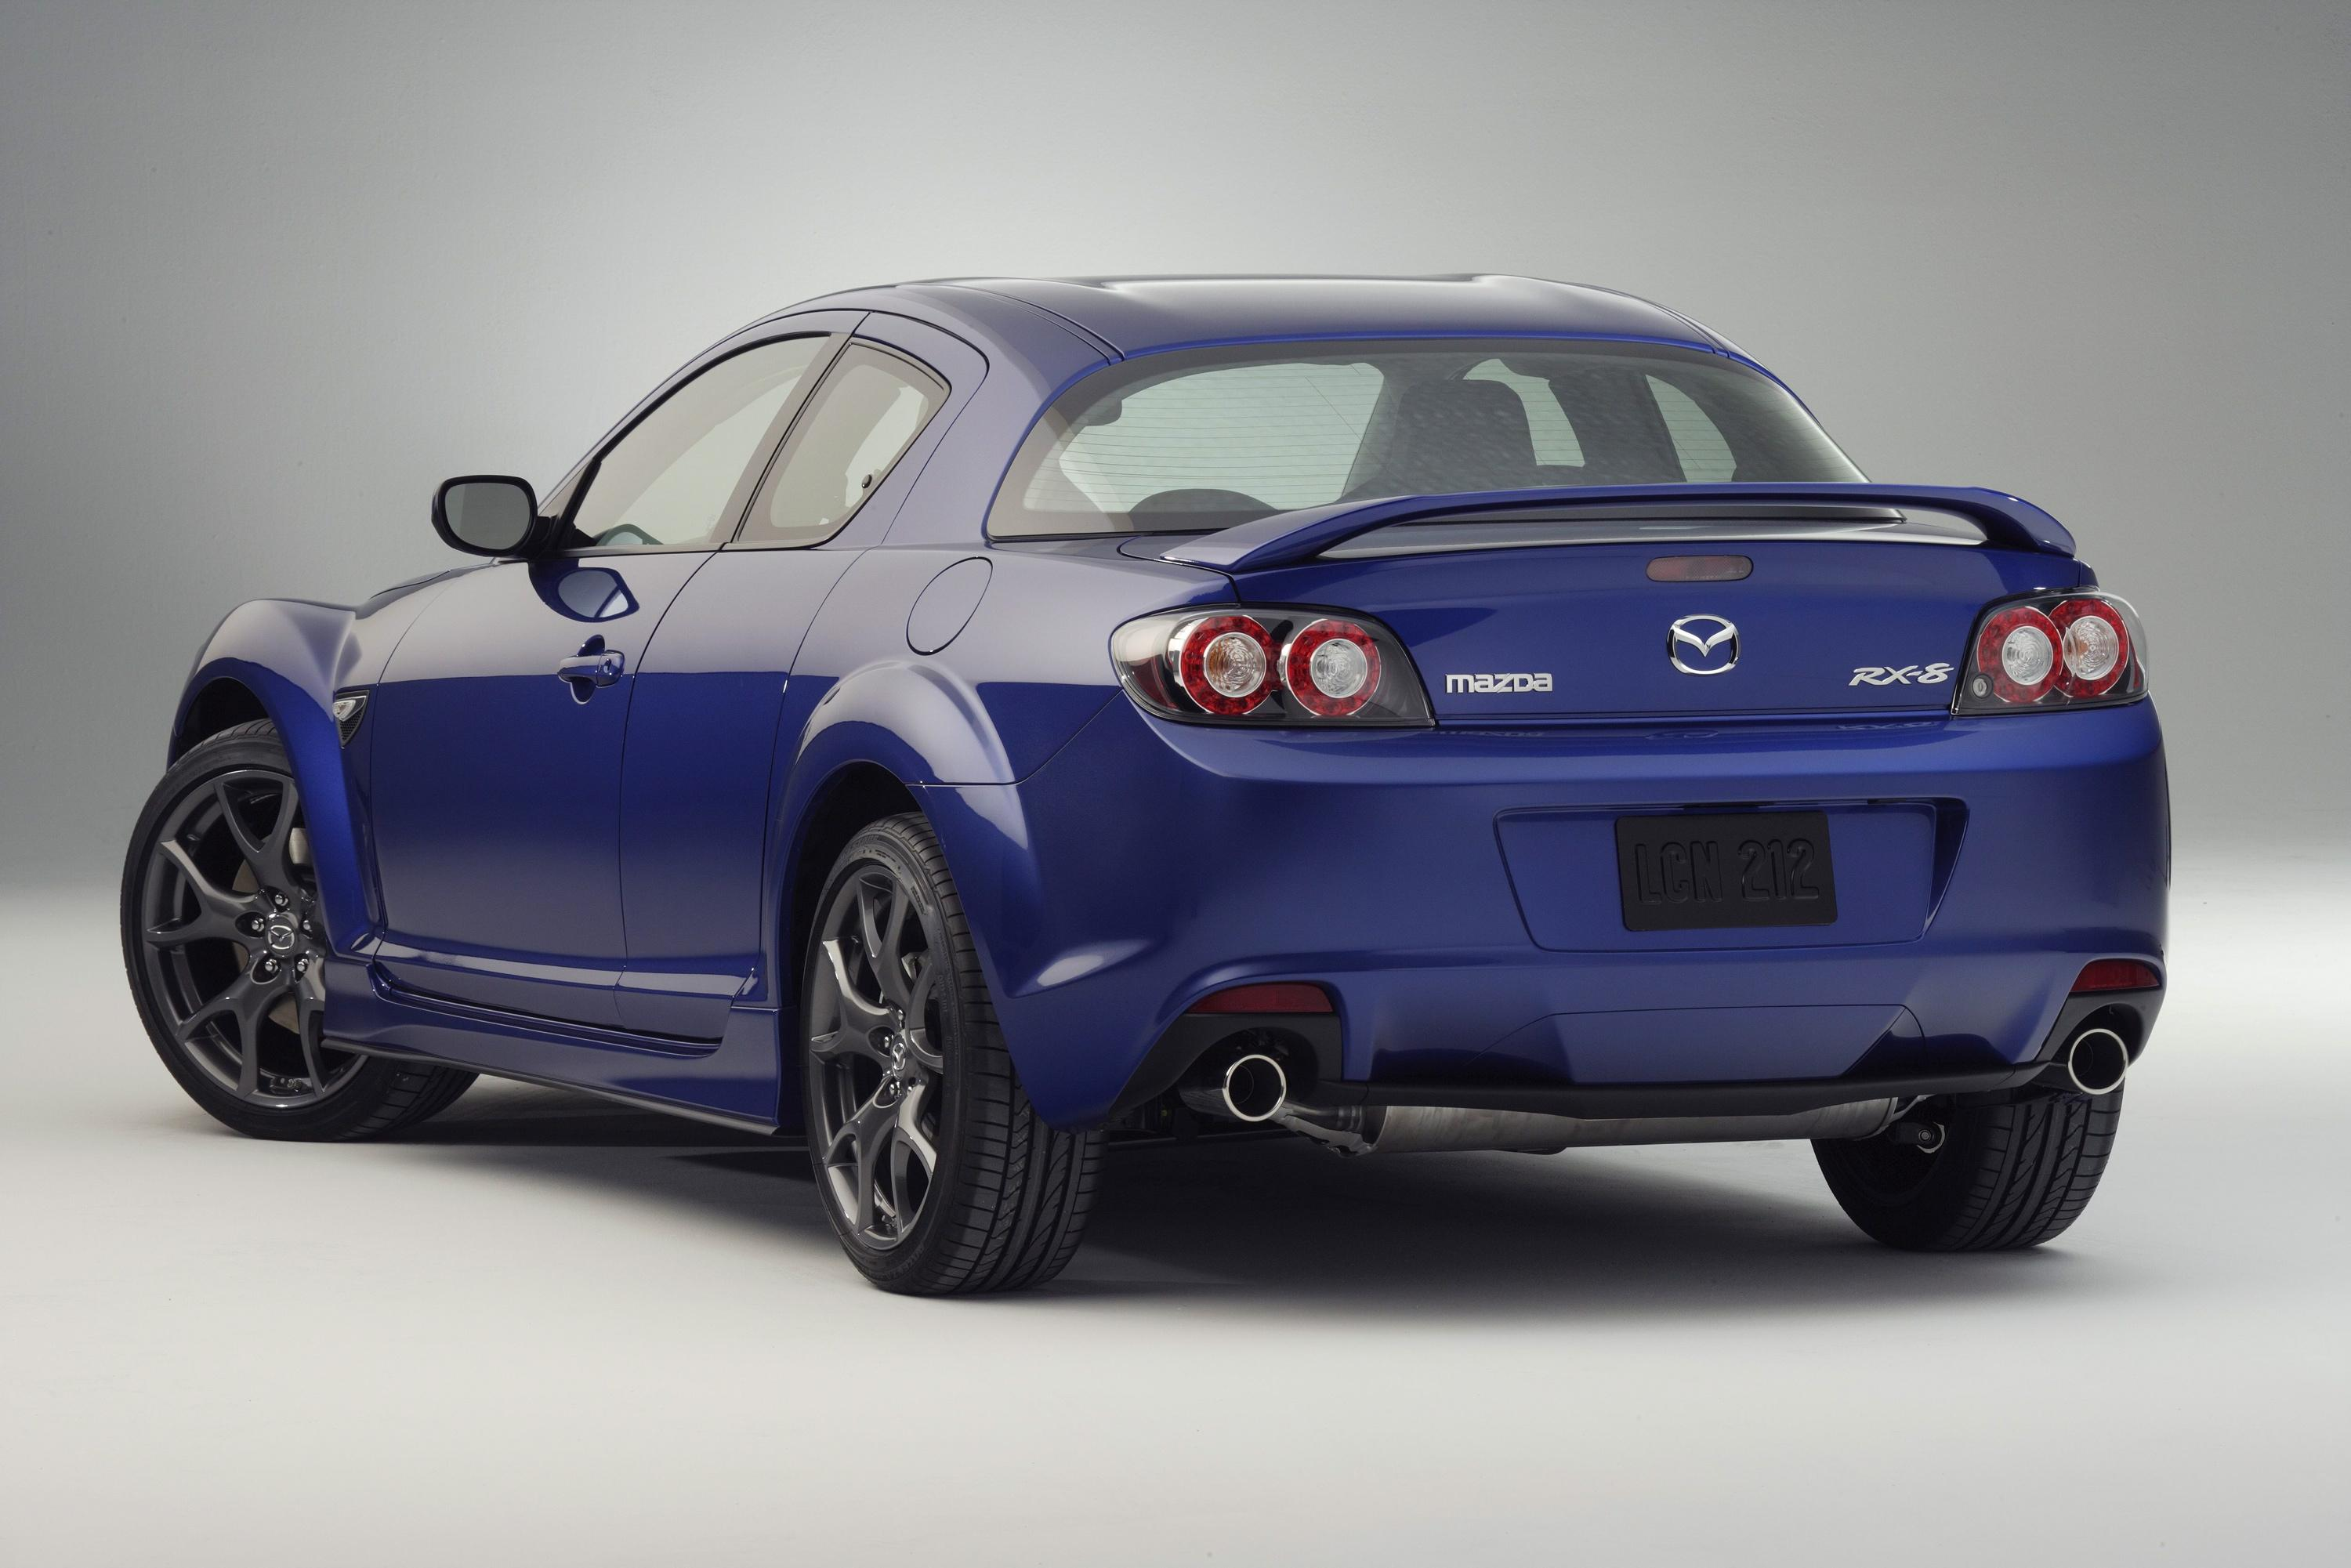 2009 mazda rx 8 top speed rh topspeed com Mazda RX-8 Specifications Mazda RX-8 R3 Review